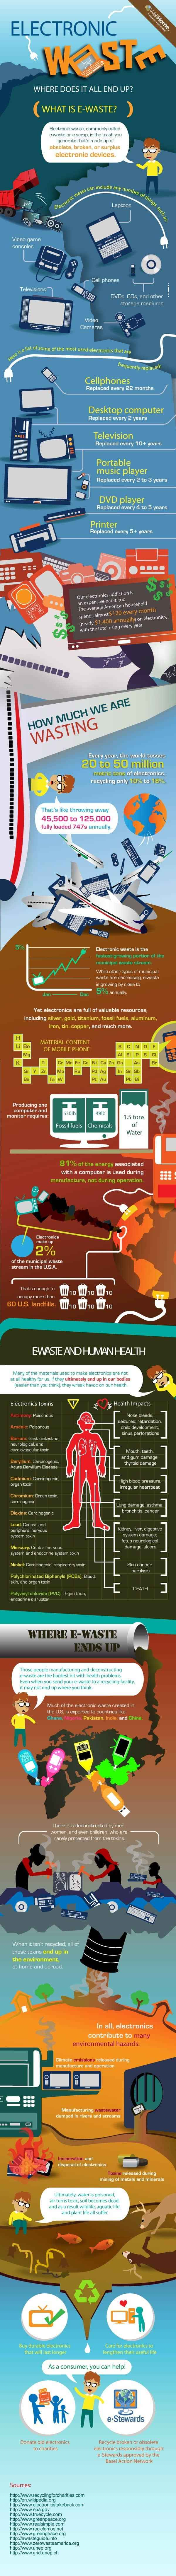 Electronic Waste Where Does it All End Up [Infographic]